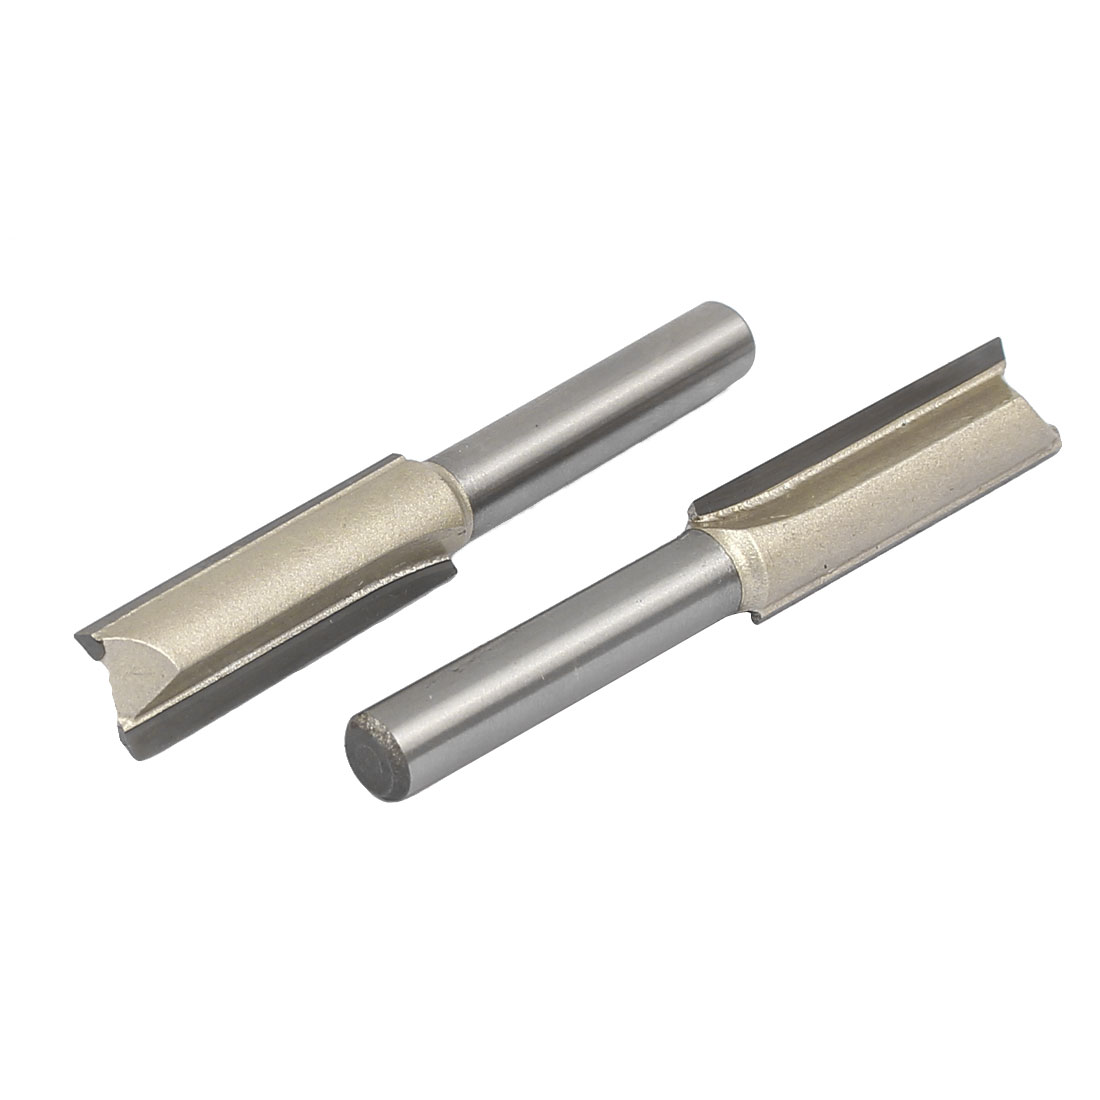 3/8-inch Cutting Dia 1/4-inch Diameter Length Double Flute Straight Router Bits 2pcs